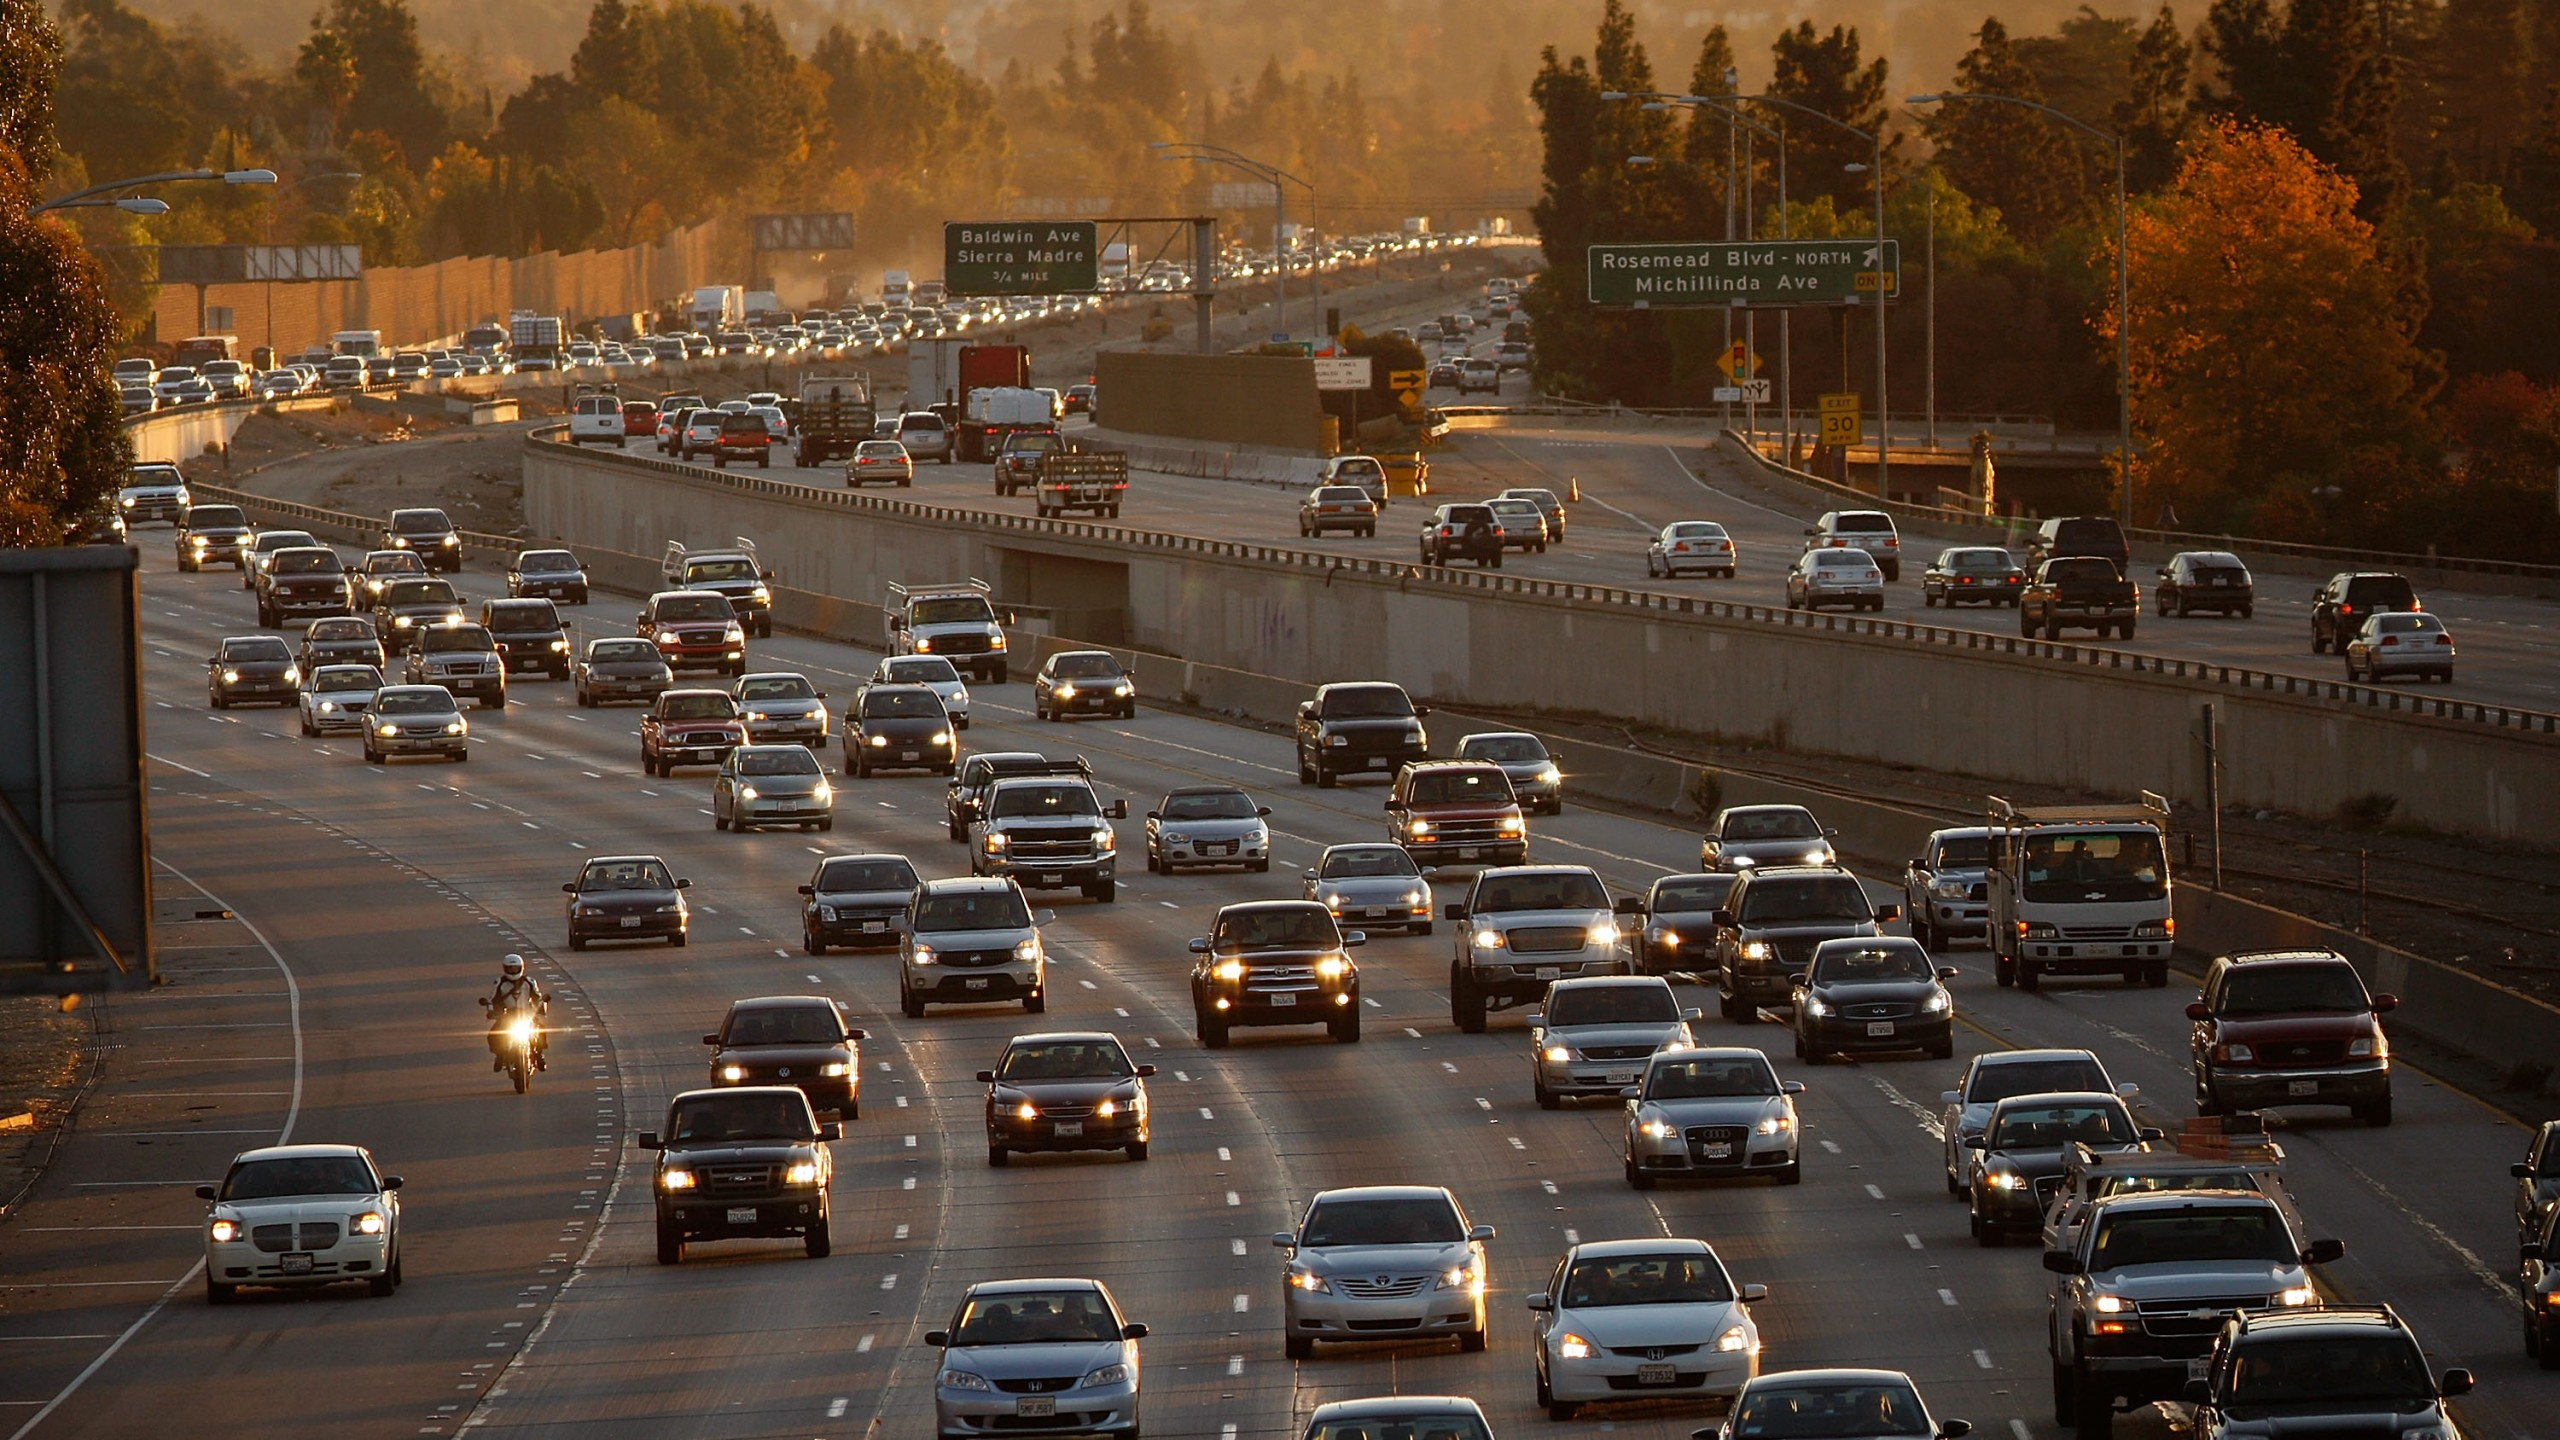 Morning commuters travel the 210 Freeway in the Pasadena area on Dec. 1, 2009. (Credit: David McNew / Getty Images)